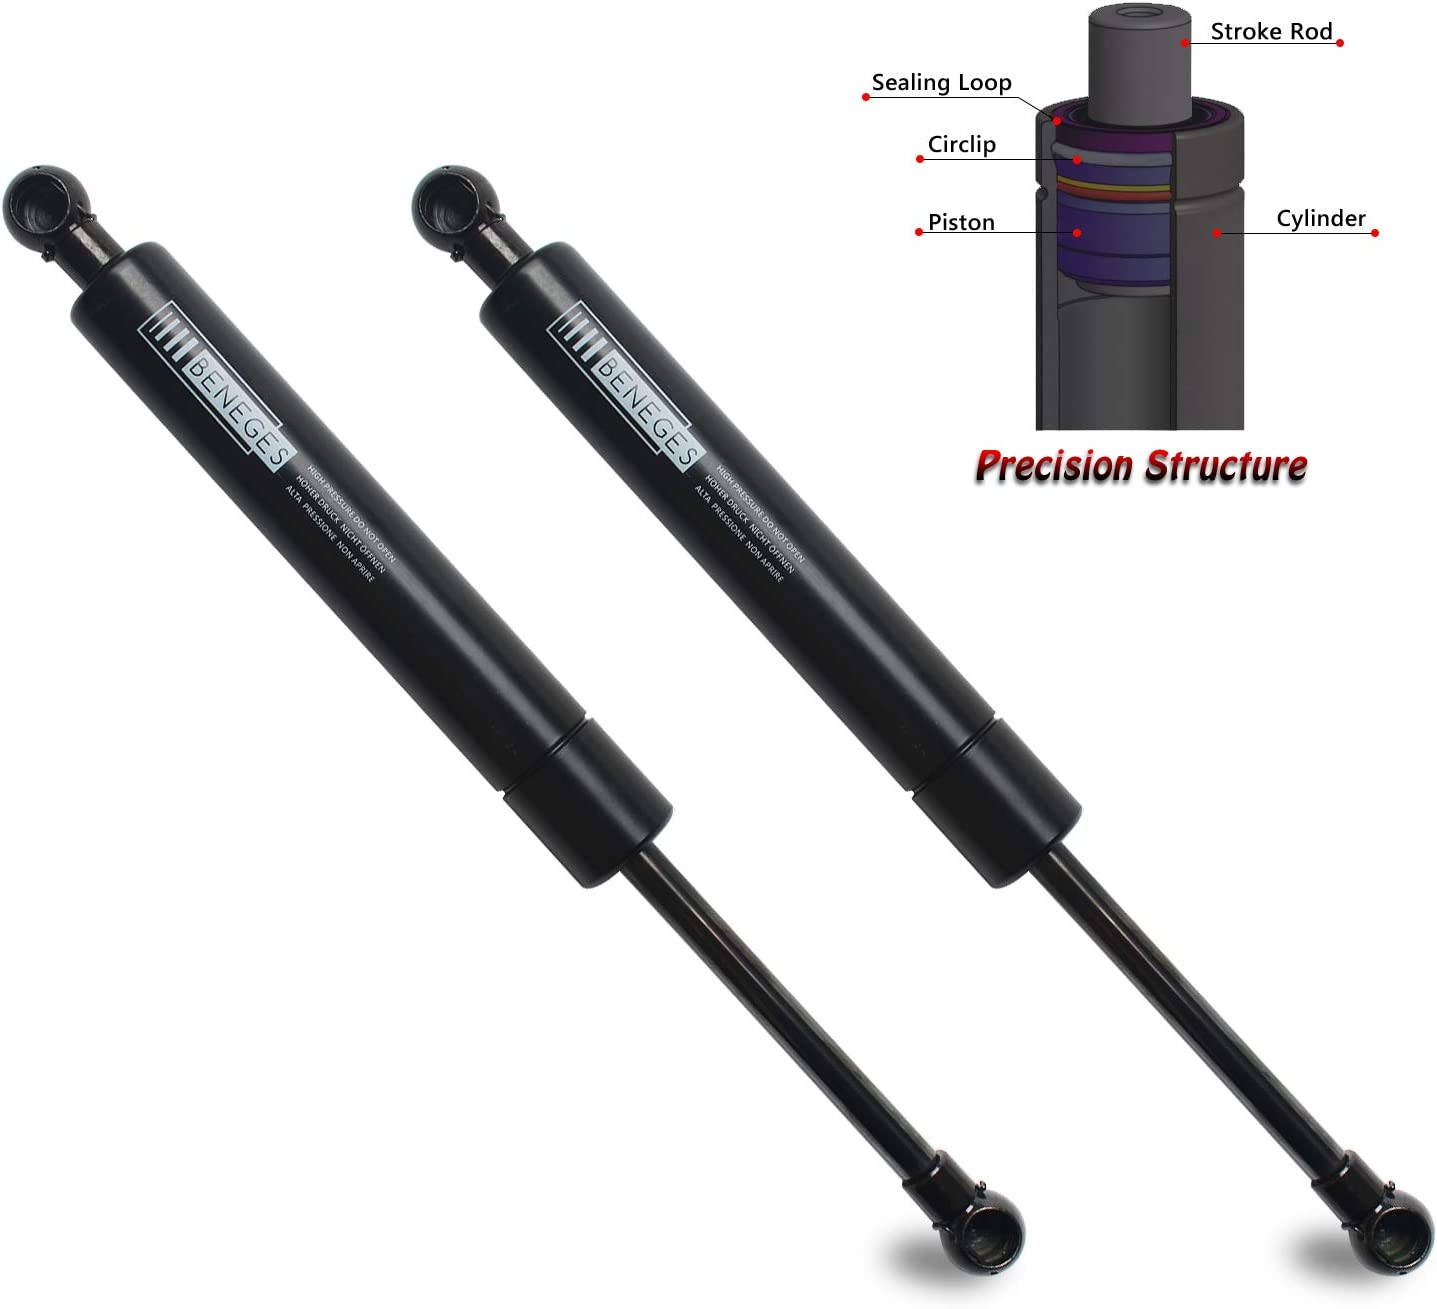 Beneges 2PCs Tailgate Lift Supports for 2001-2007 Volvo V70 613839 2006-2007 Volvo XC70 Rear Hatch Liftgate Gas Charged Springs Struts Shocks Dampers SG415010 SG415008